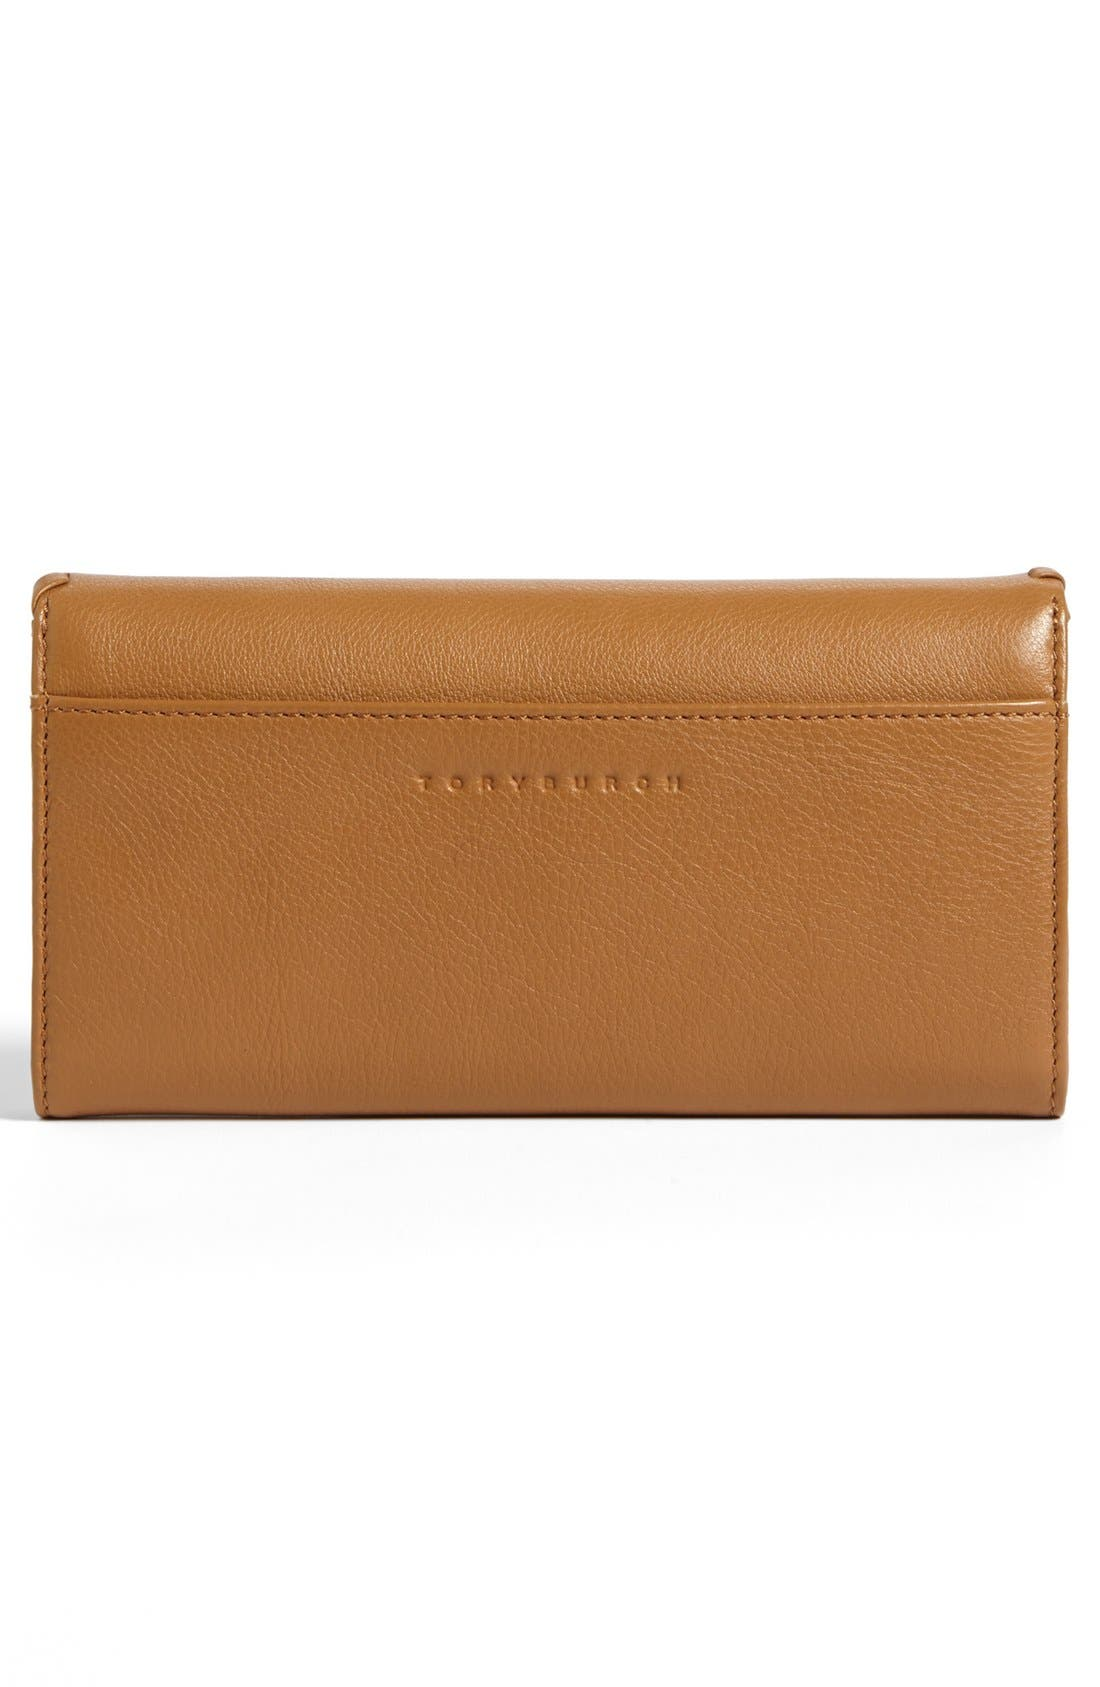 Alternate Image 3  - Tory Burch 'Marion' Envelope Continental Wallet